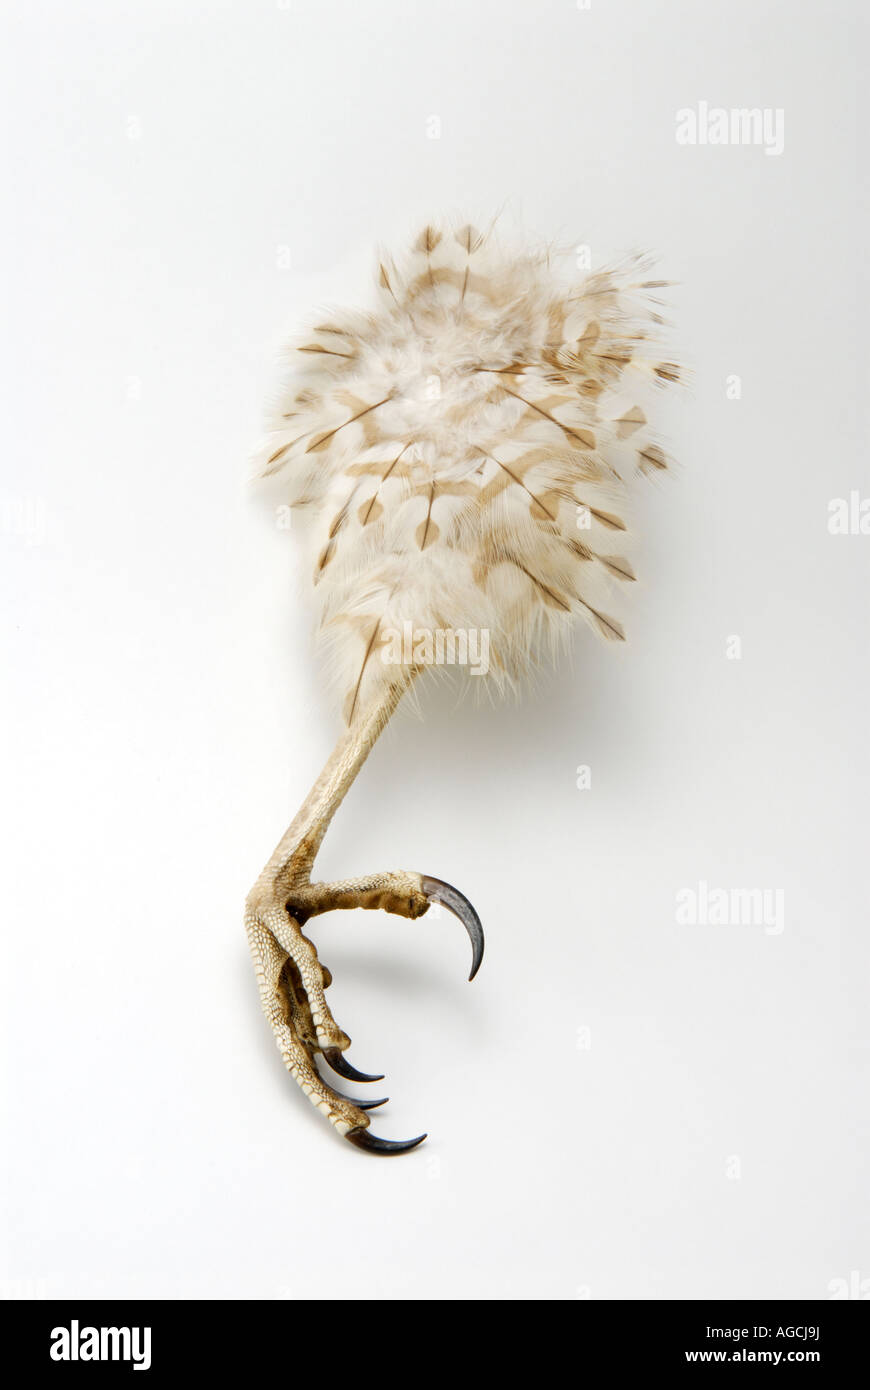 Talon claw of the Cooper's Hawk Accipiter cooperii - Stock Image